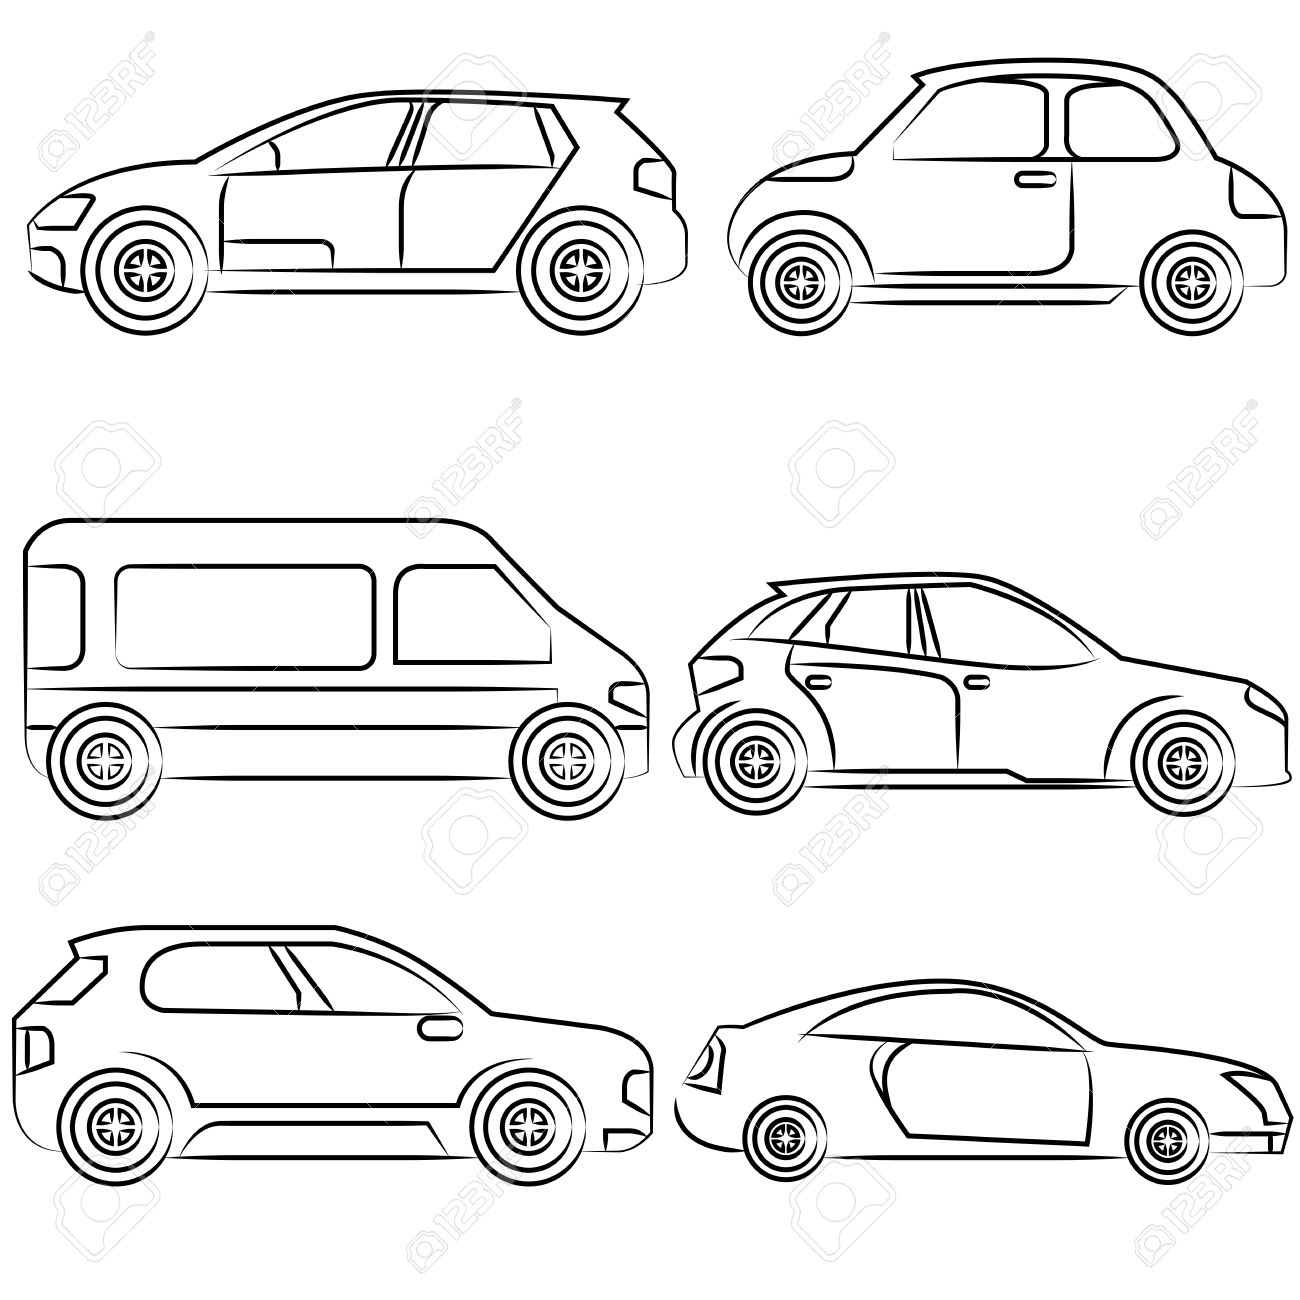 1300x1300 Car, Drawing Line Royalty Free Cliparts, Vectors, And Stock